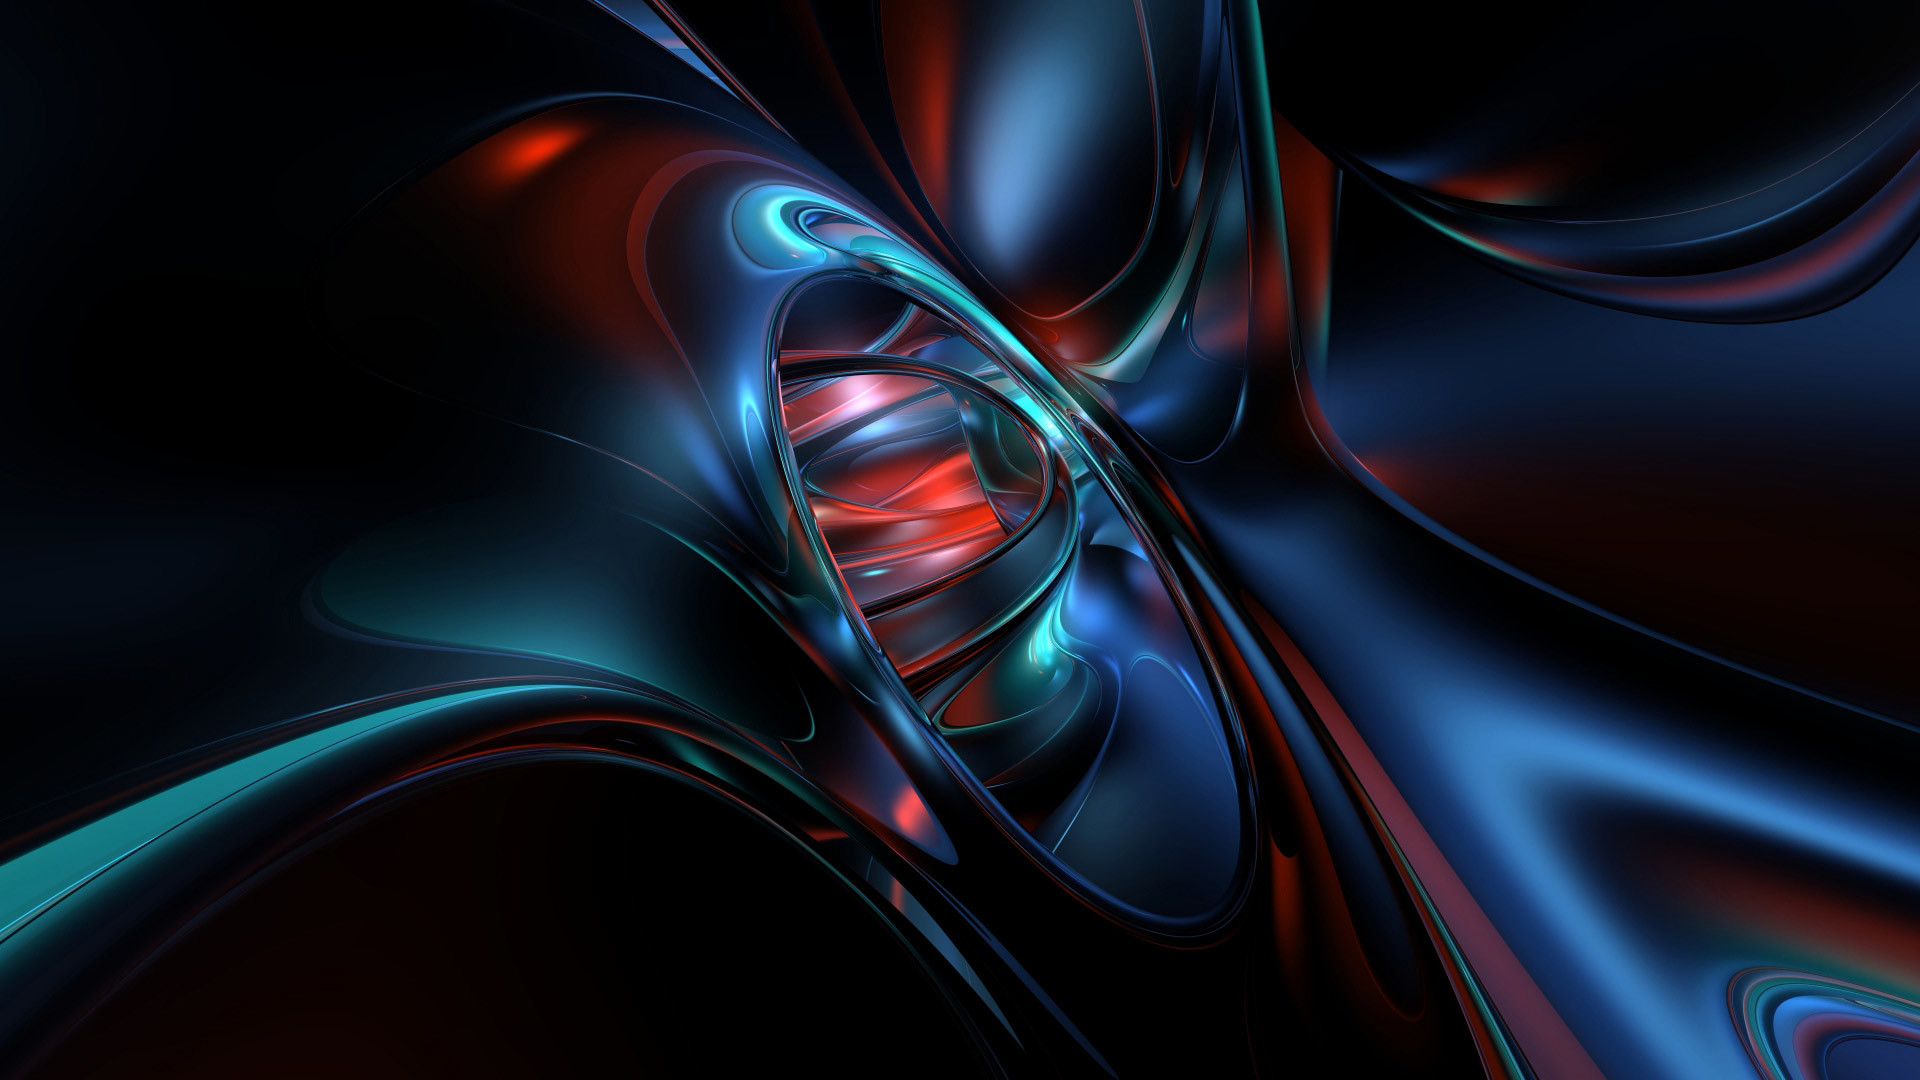 1920x1080 Blue Flower Abstract | HD 3D & Abstract Wallpapers | Pinterest | Blue  flowers